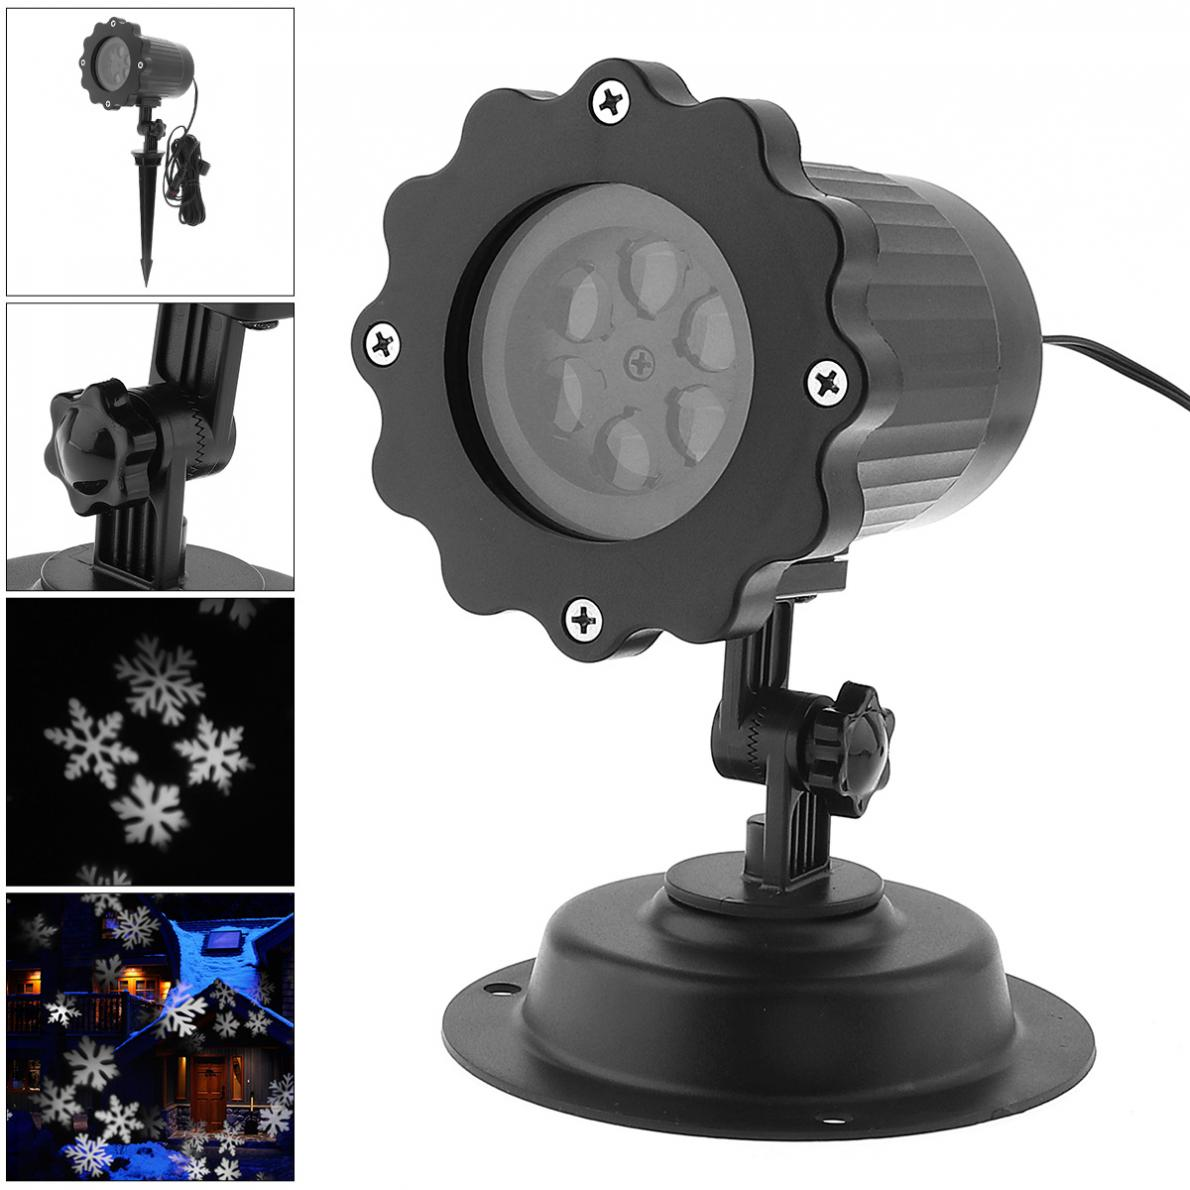 Waterproof LED Projector Light with Stand,Snowflake Effect Landscape Lamp for Outdoor/Indoor Christmas/Holiday/Stage Decoration